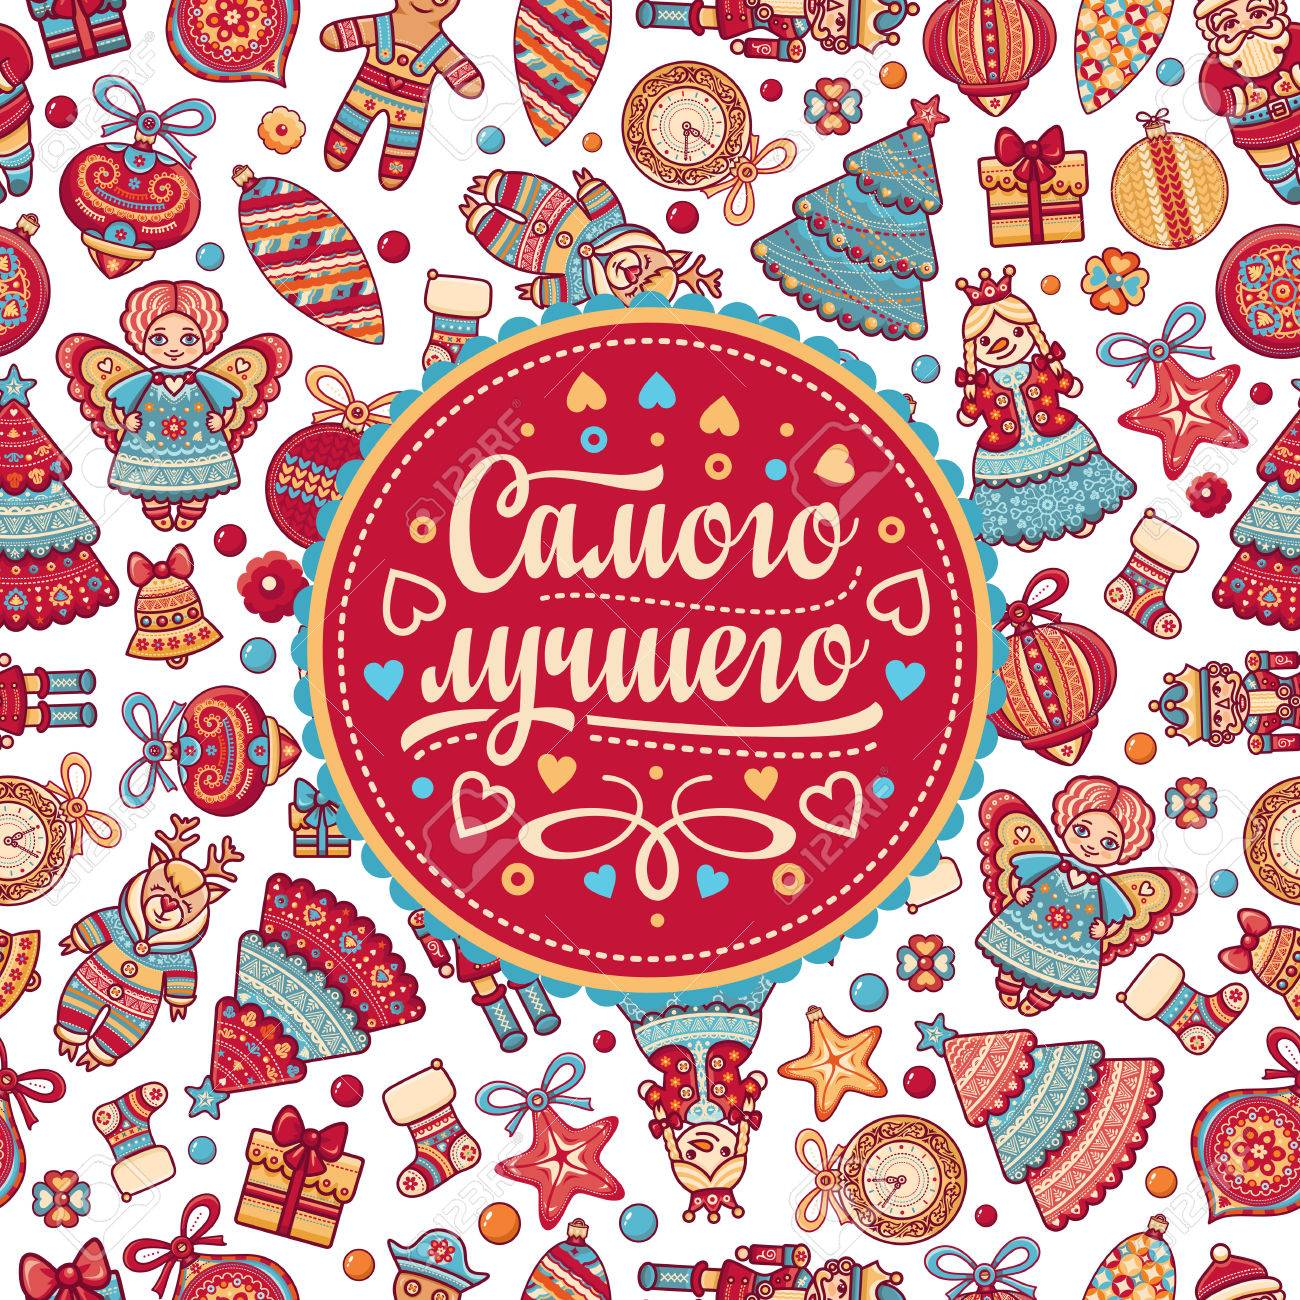 New year background with greetings in russian language warm new year background with greetings in russian language warm wishes for happy holidays kristyandbryce Gallery